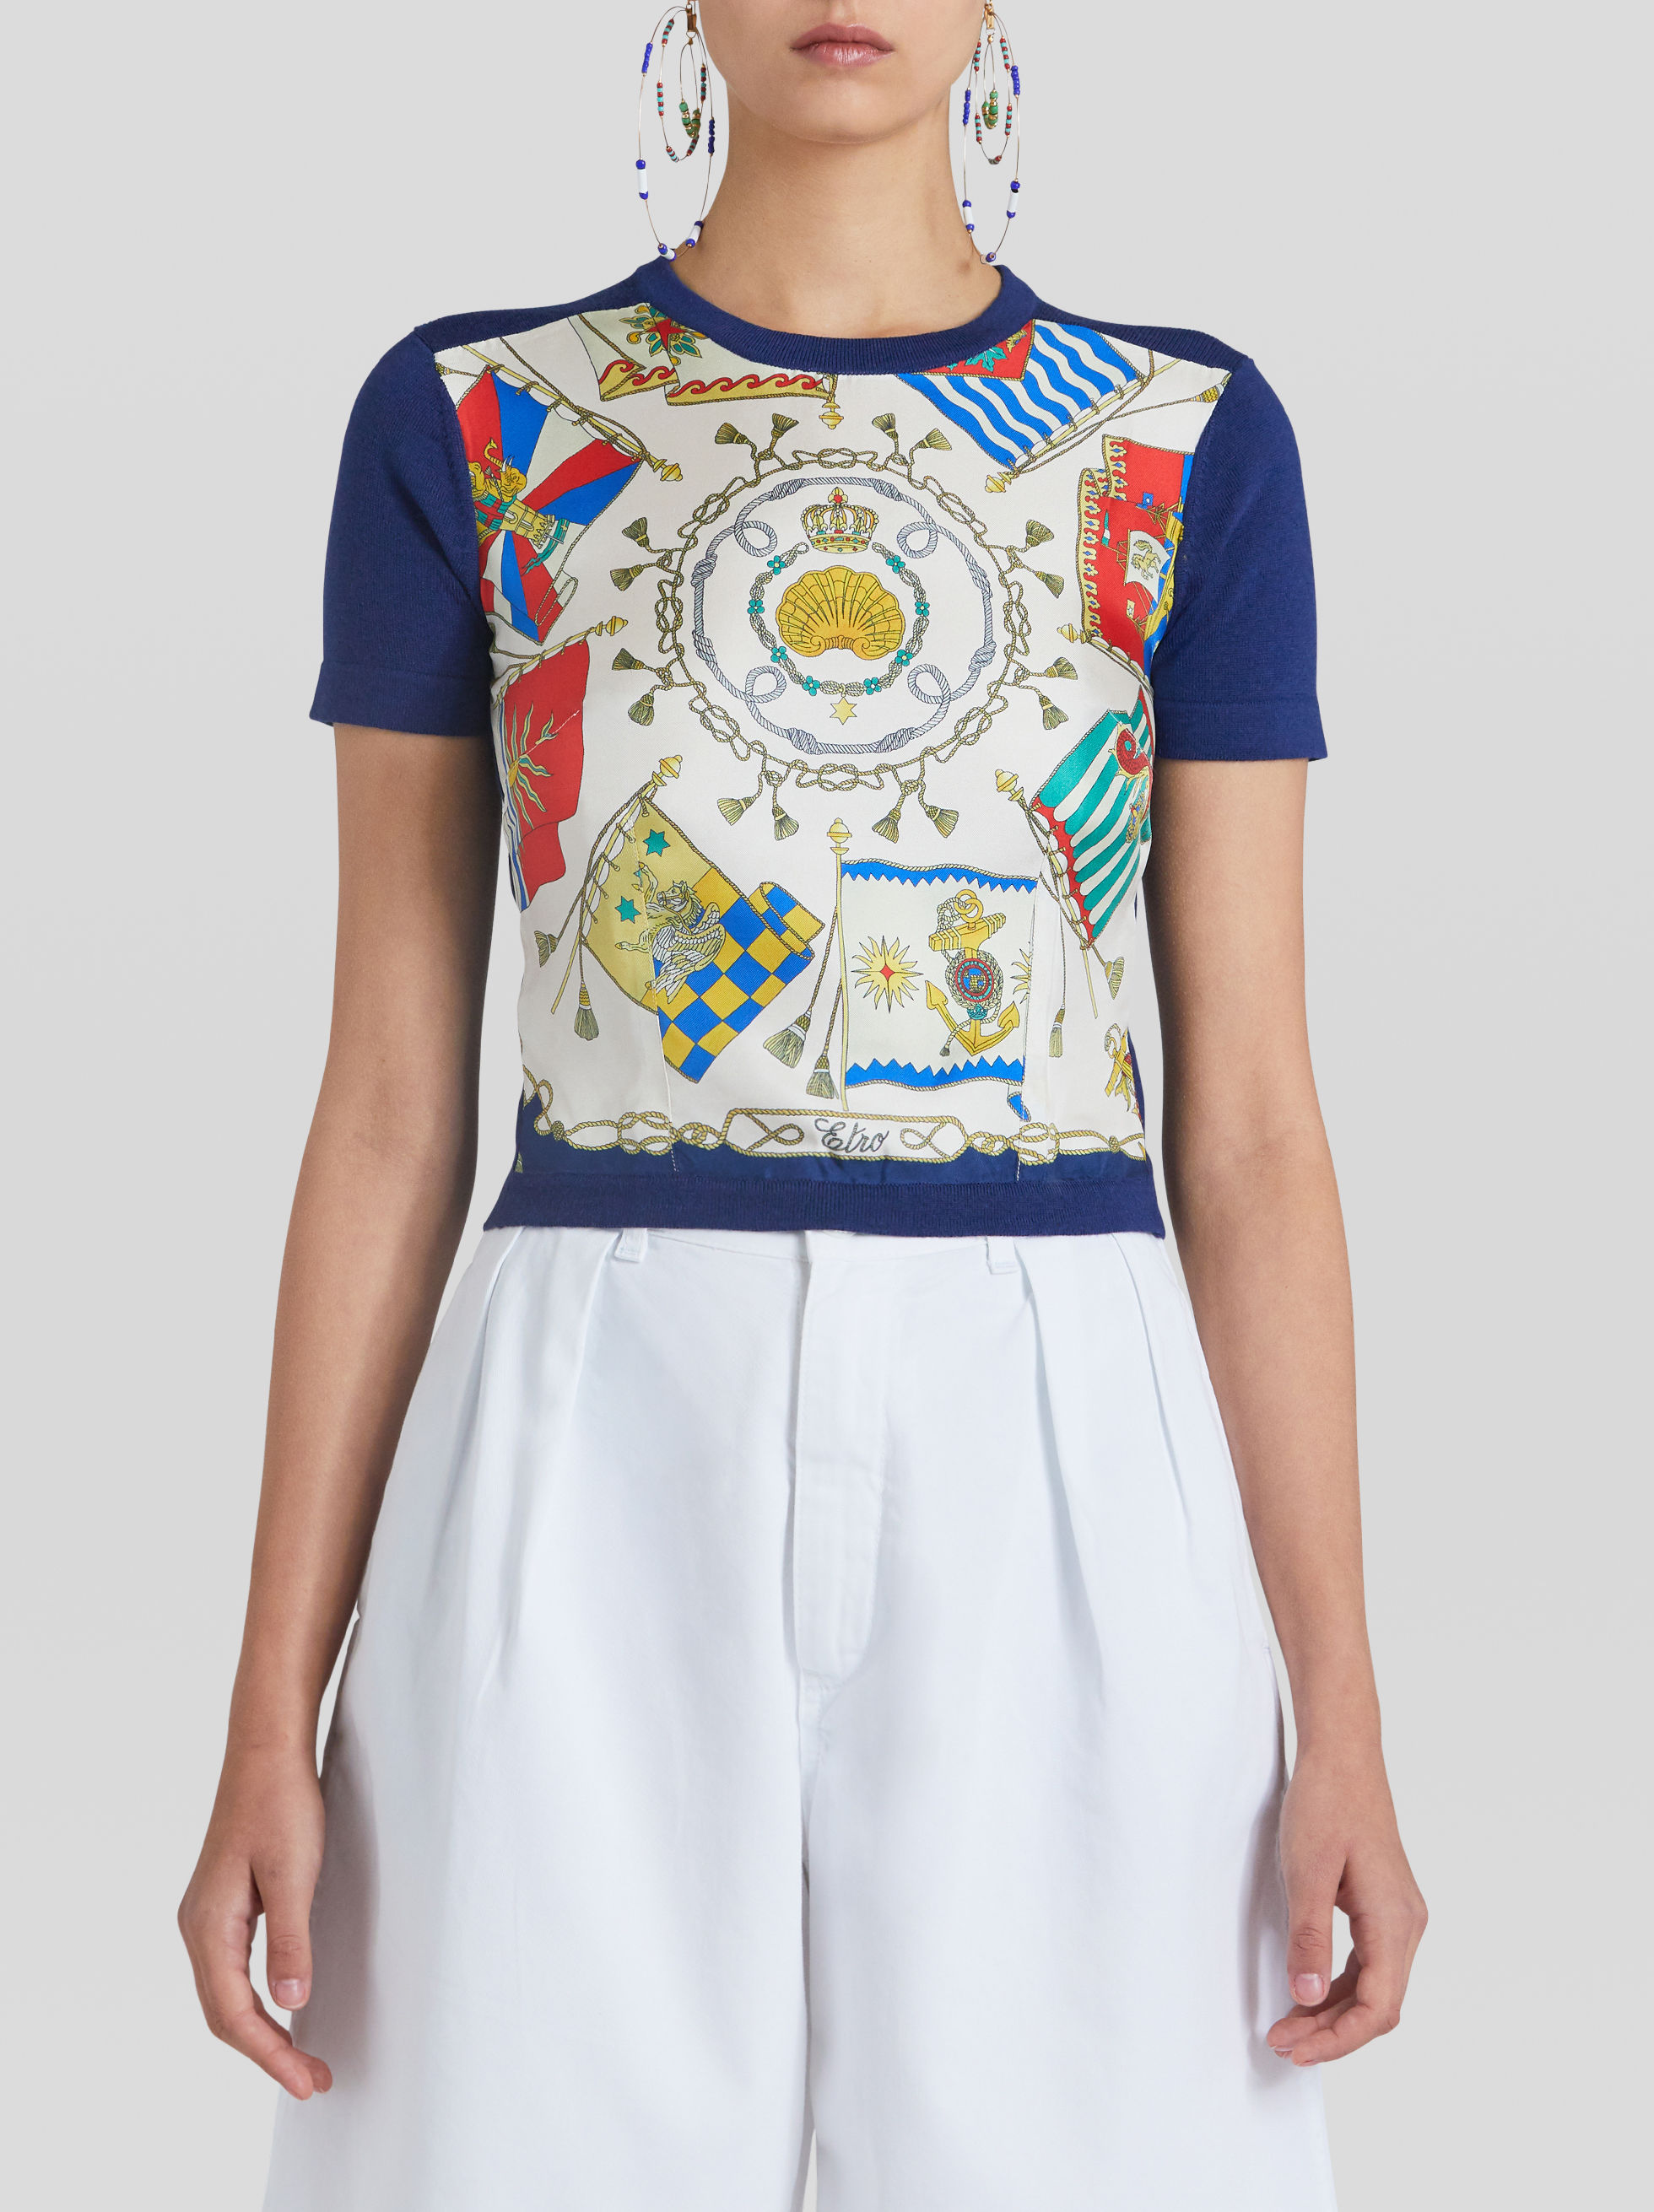 WOOL AND SILK T-SHIRT WITH NAUTICAL PRINT